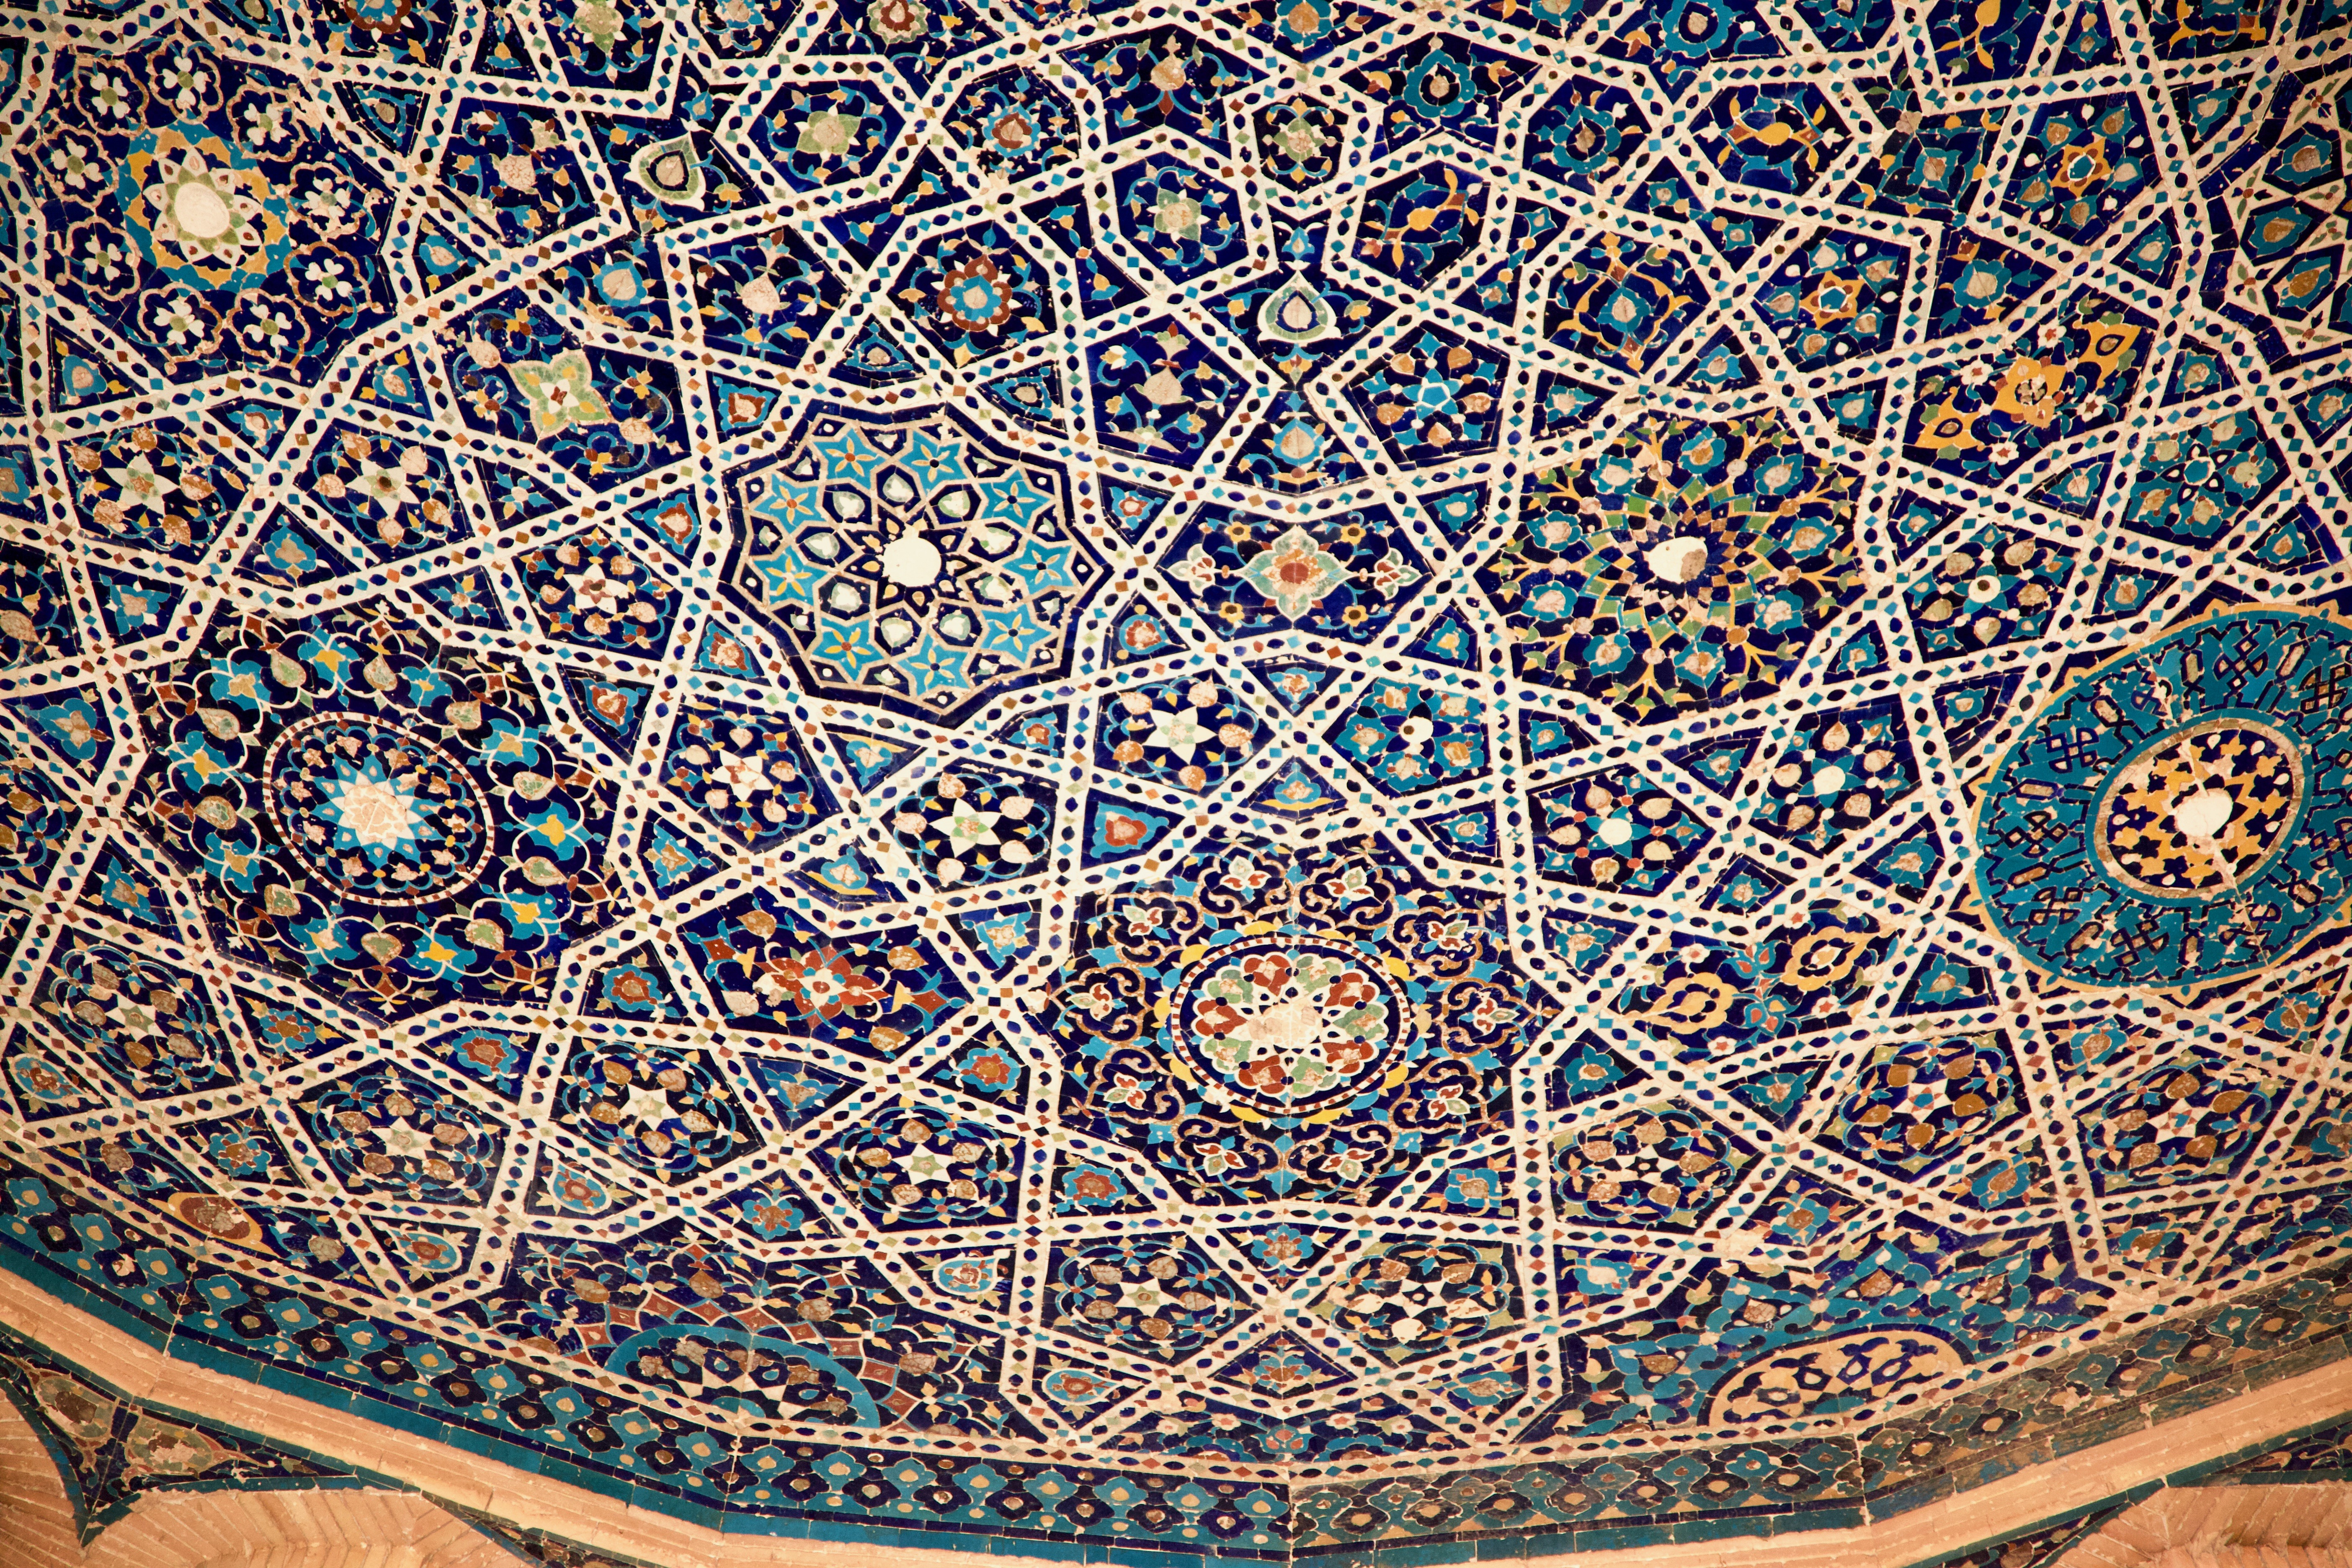 Geometric tile patterns from the dome of a Muslim tomb.